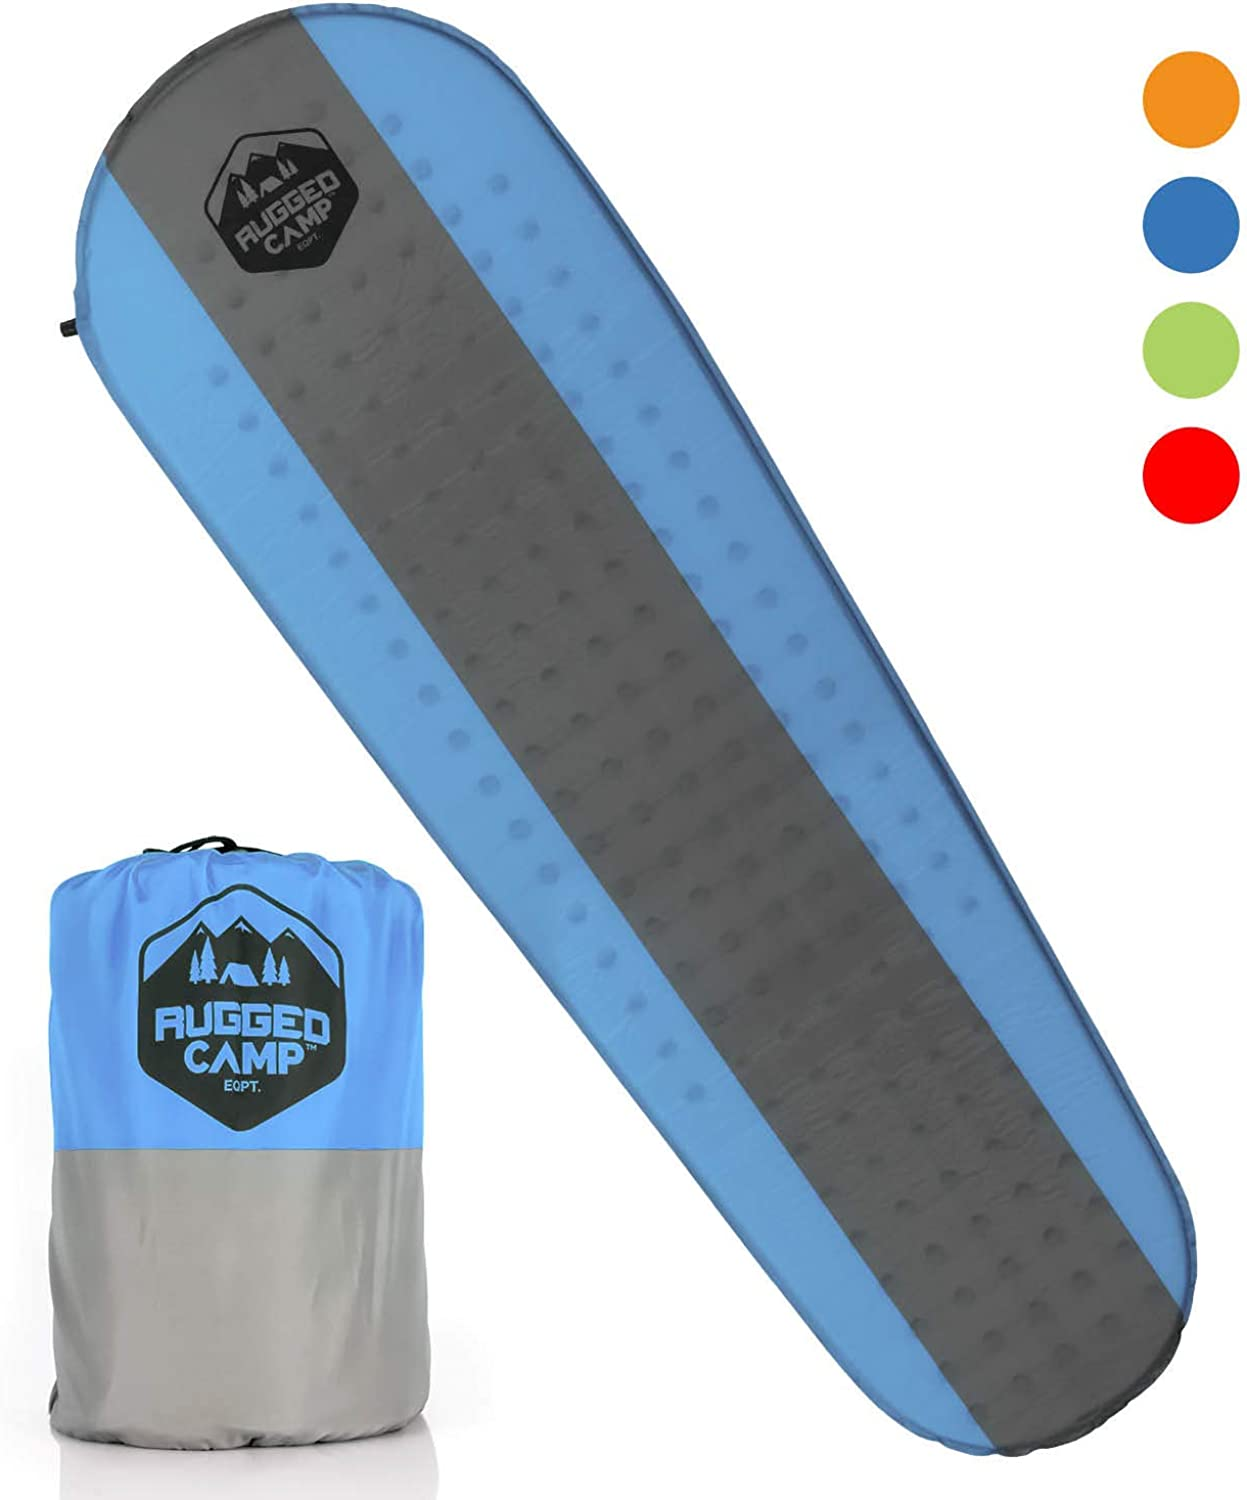 Rugged Camp Self Inflating Camping Mat - Foam Sleeping Pad is 1.5 Inches Thick Perfect for Hiking, Backpacking, Travel - Lightweight, Waterproof & Compact Camping Air Mattress (Multiple Colors)